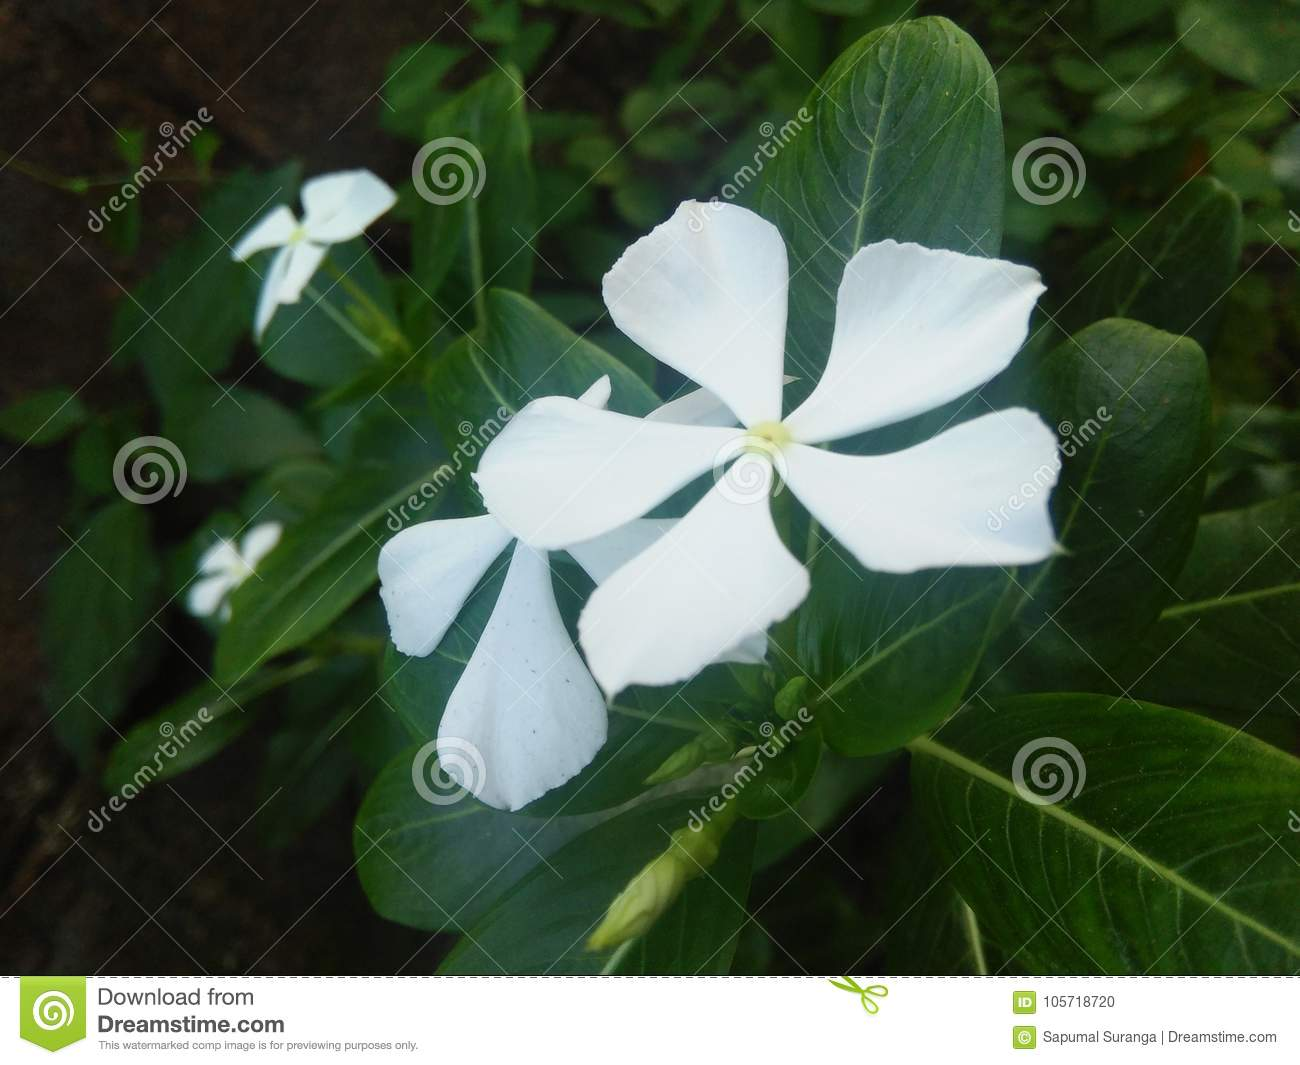 Beautiful flower of sri lanka photos stock photo image of flower download beautiful flower of sri lanka photos stock photo image of flower green izmirmasajfo